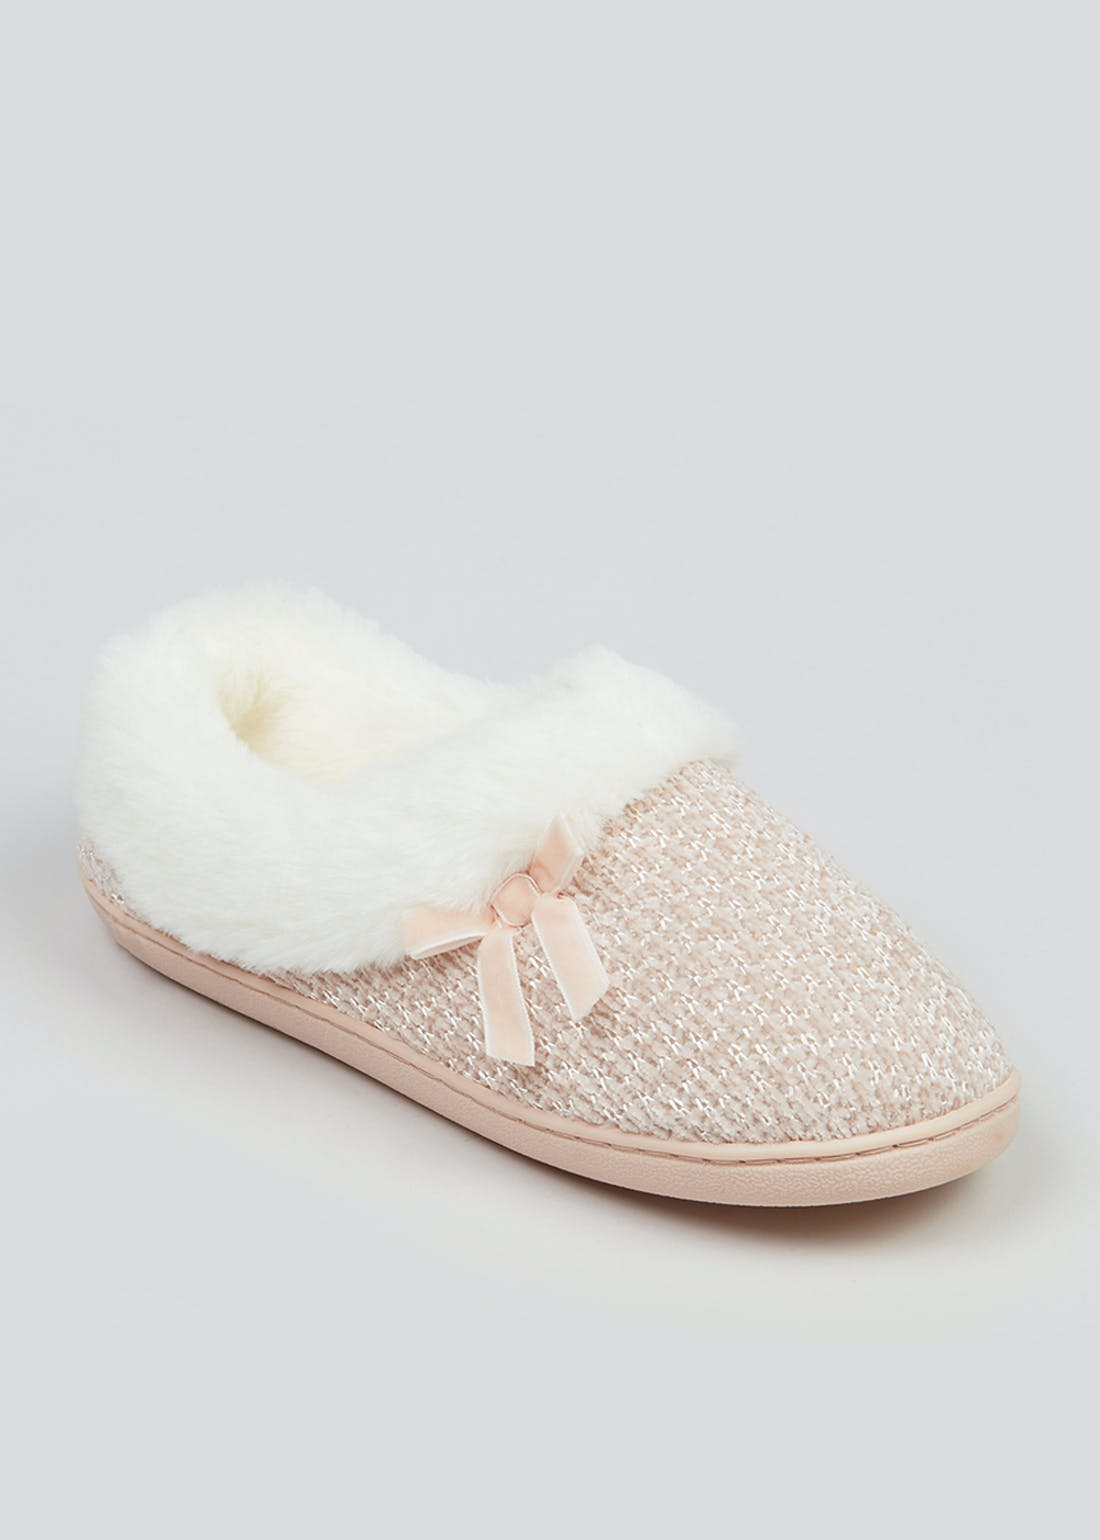 Knitted Fur Lined Full Slippers